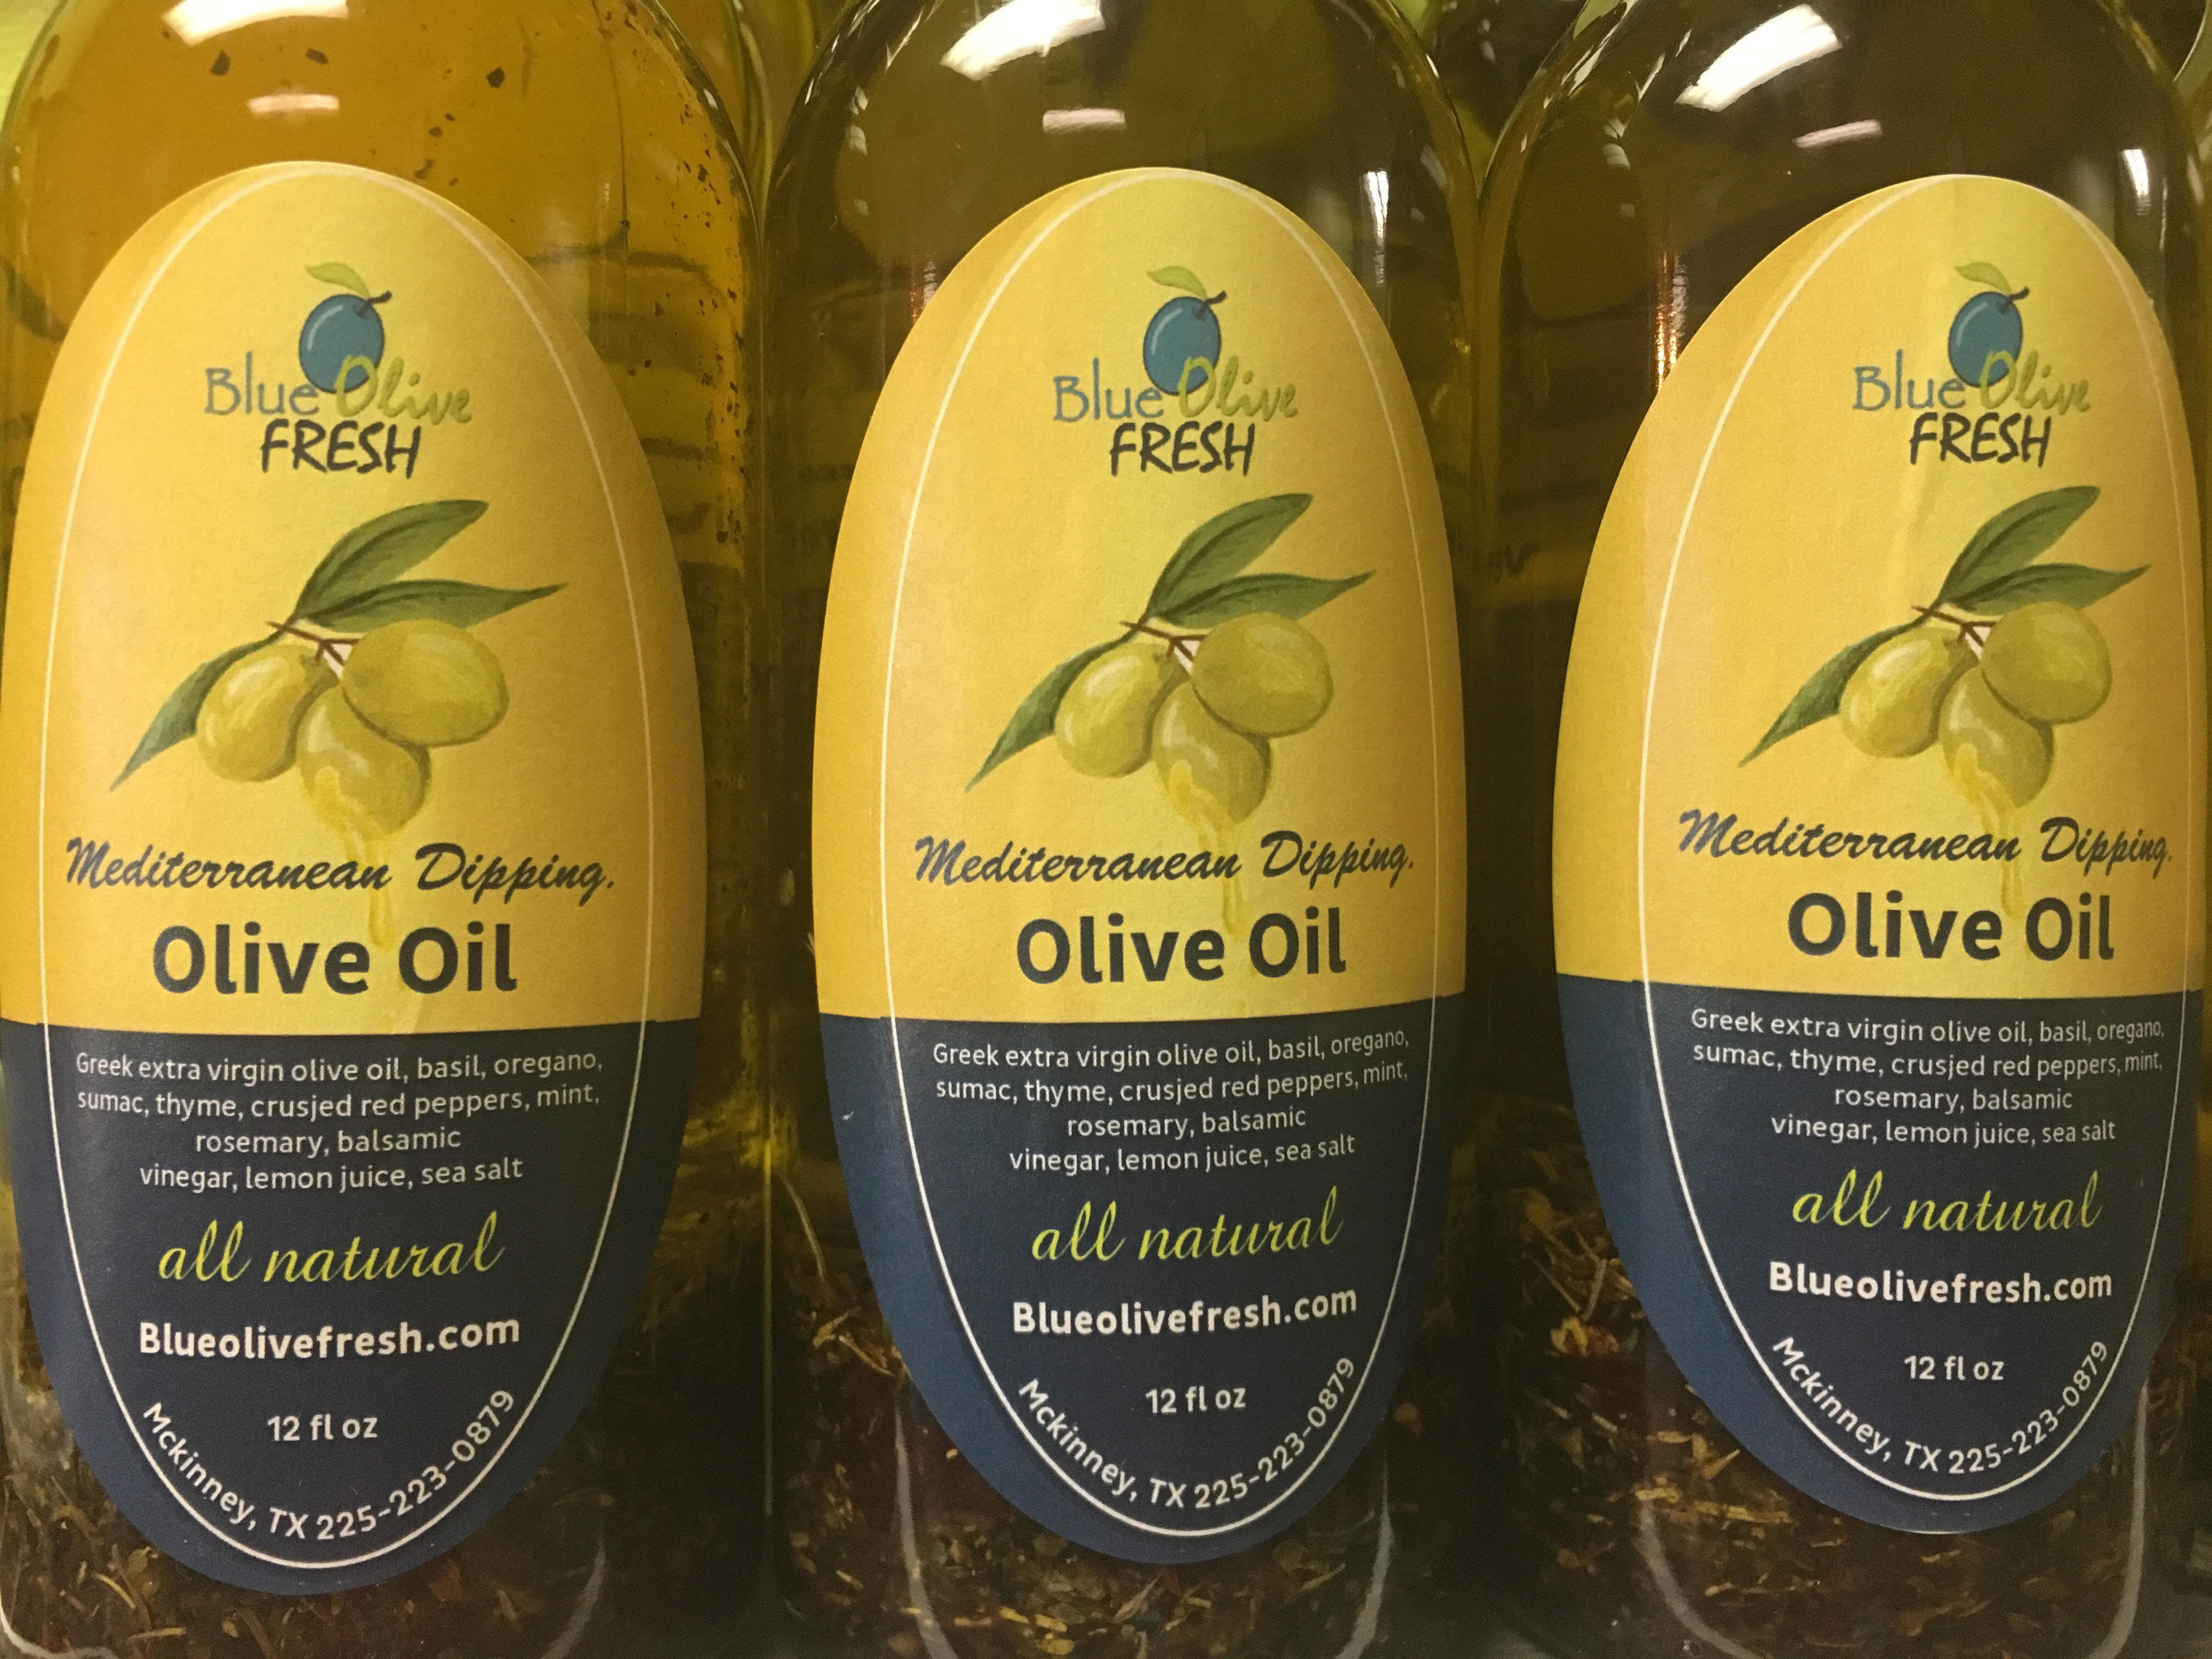 Mediterranean Dipping Olive Oil 00011